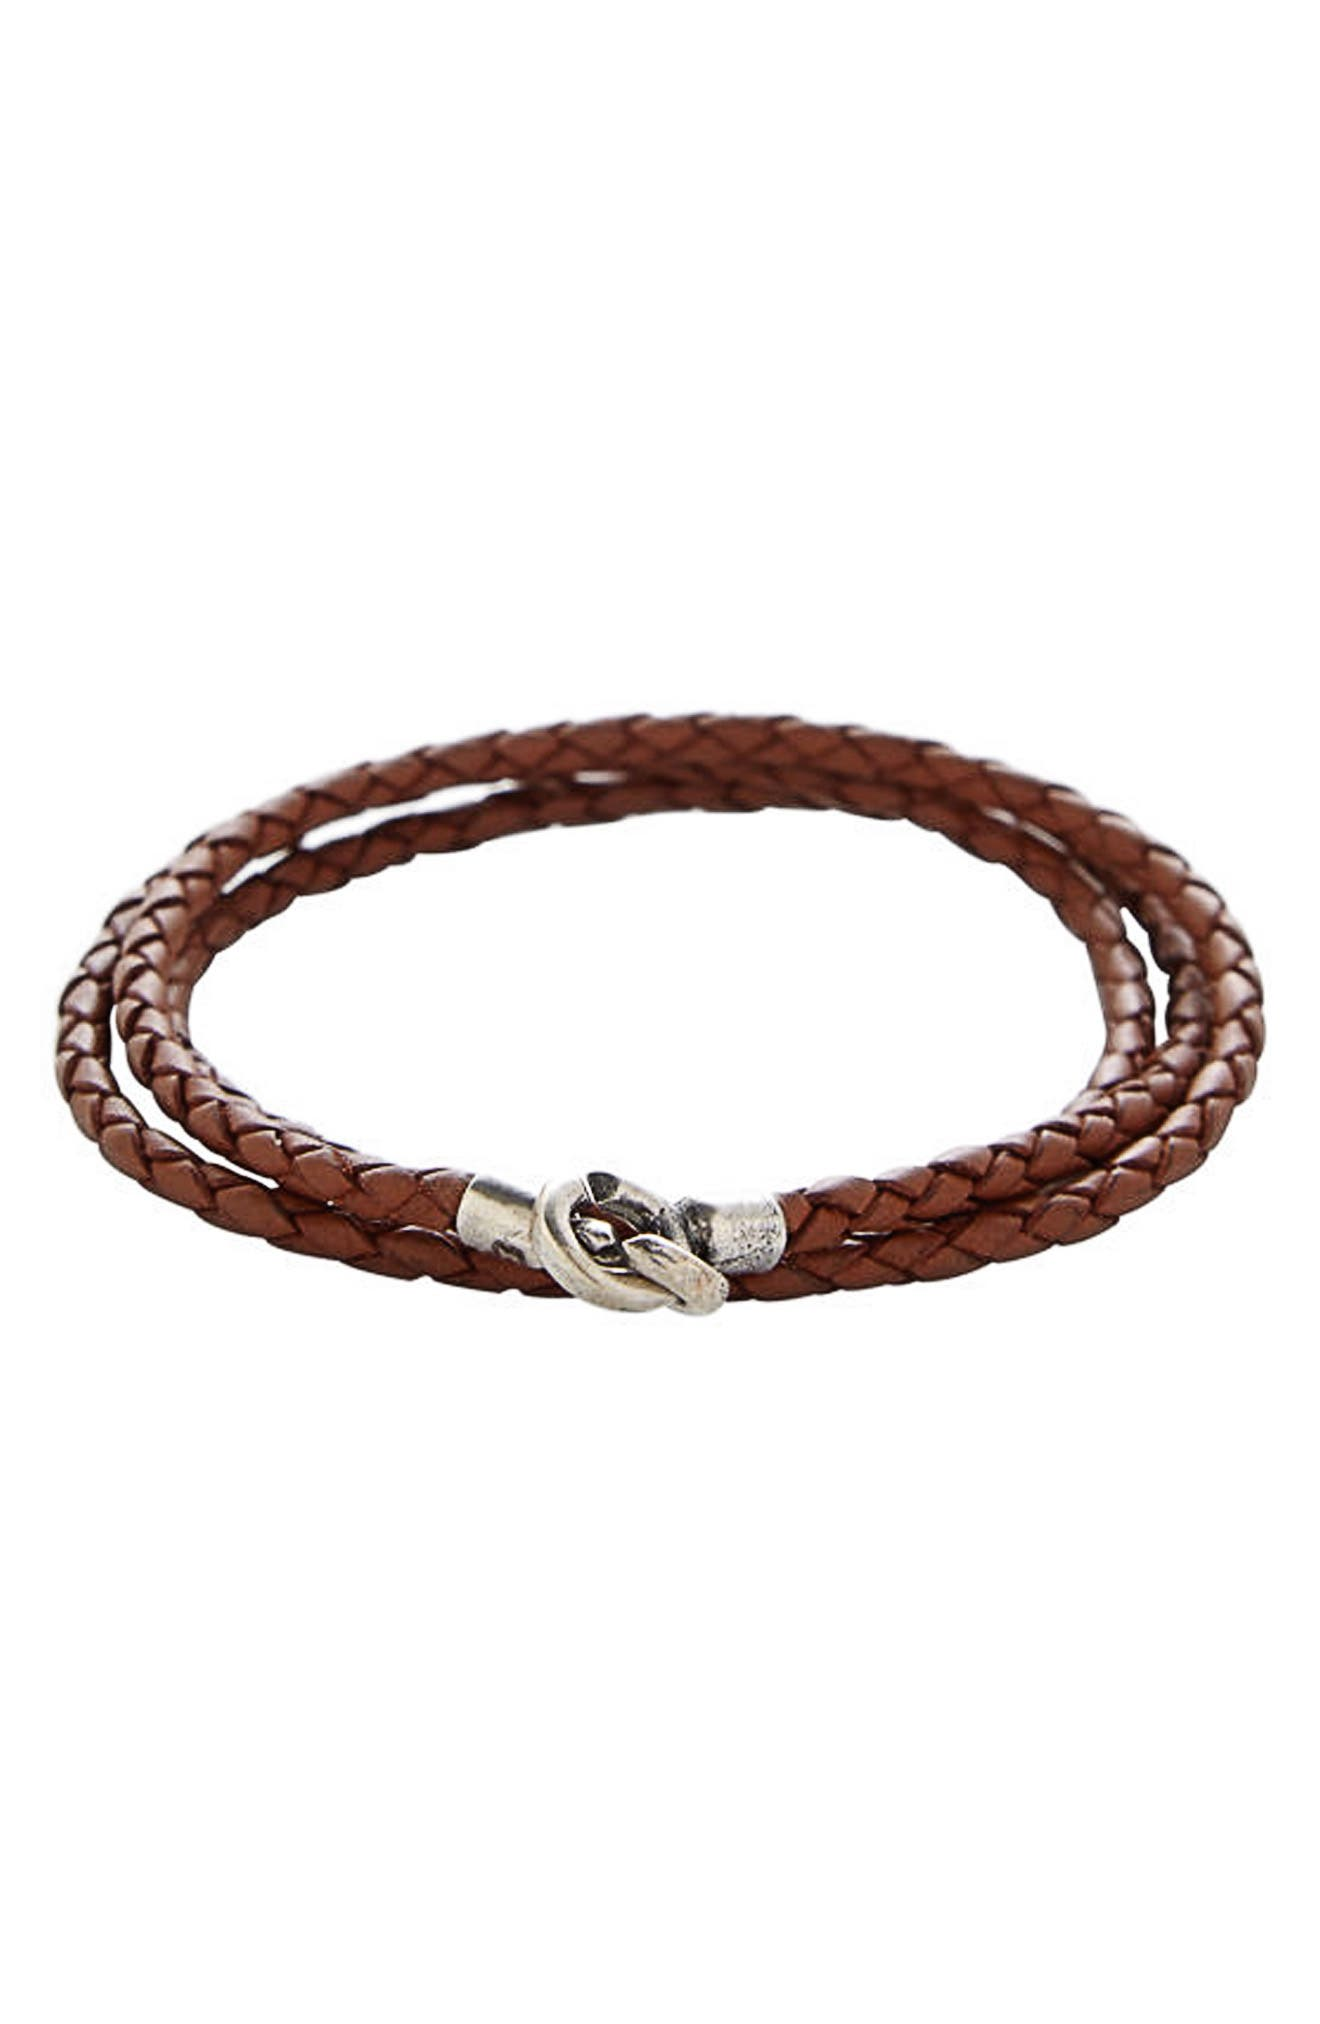 DEGS & SAL Leather Wrap Bracelet